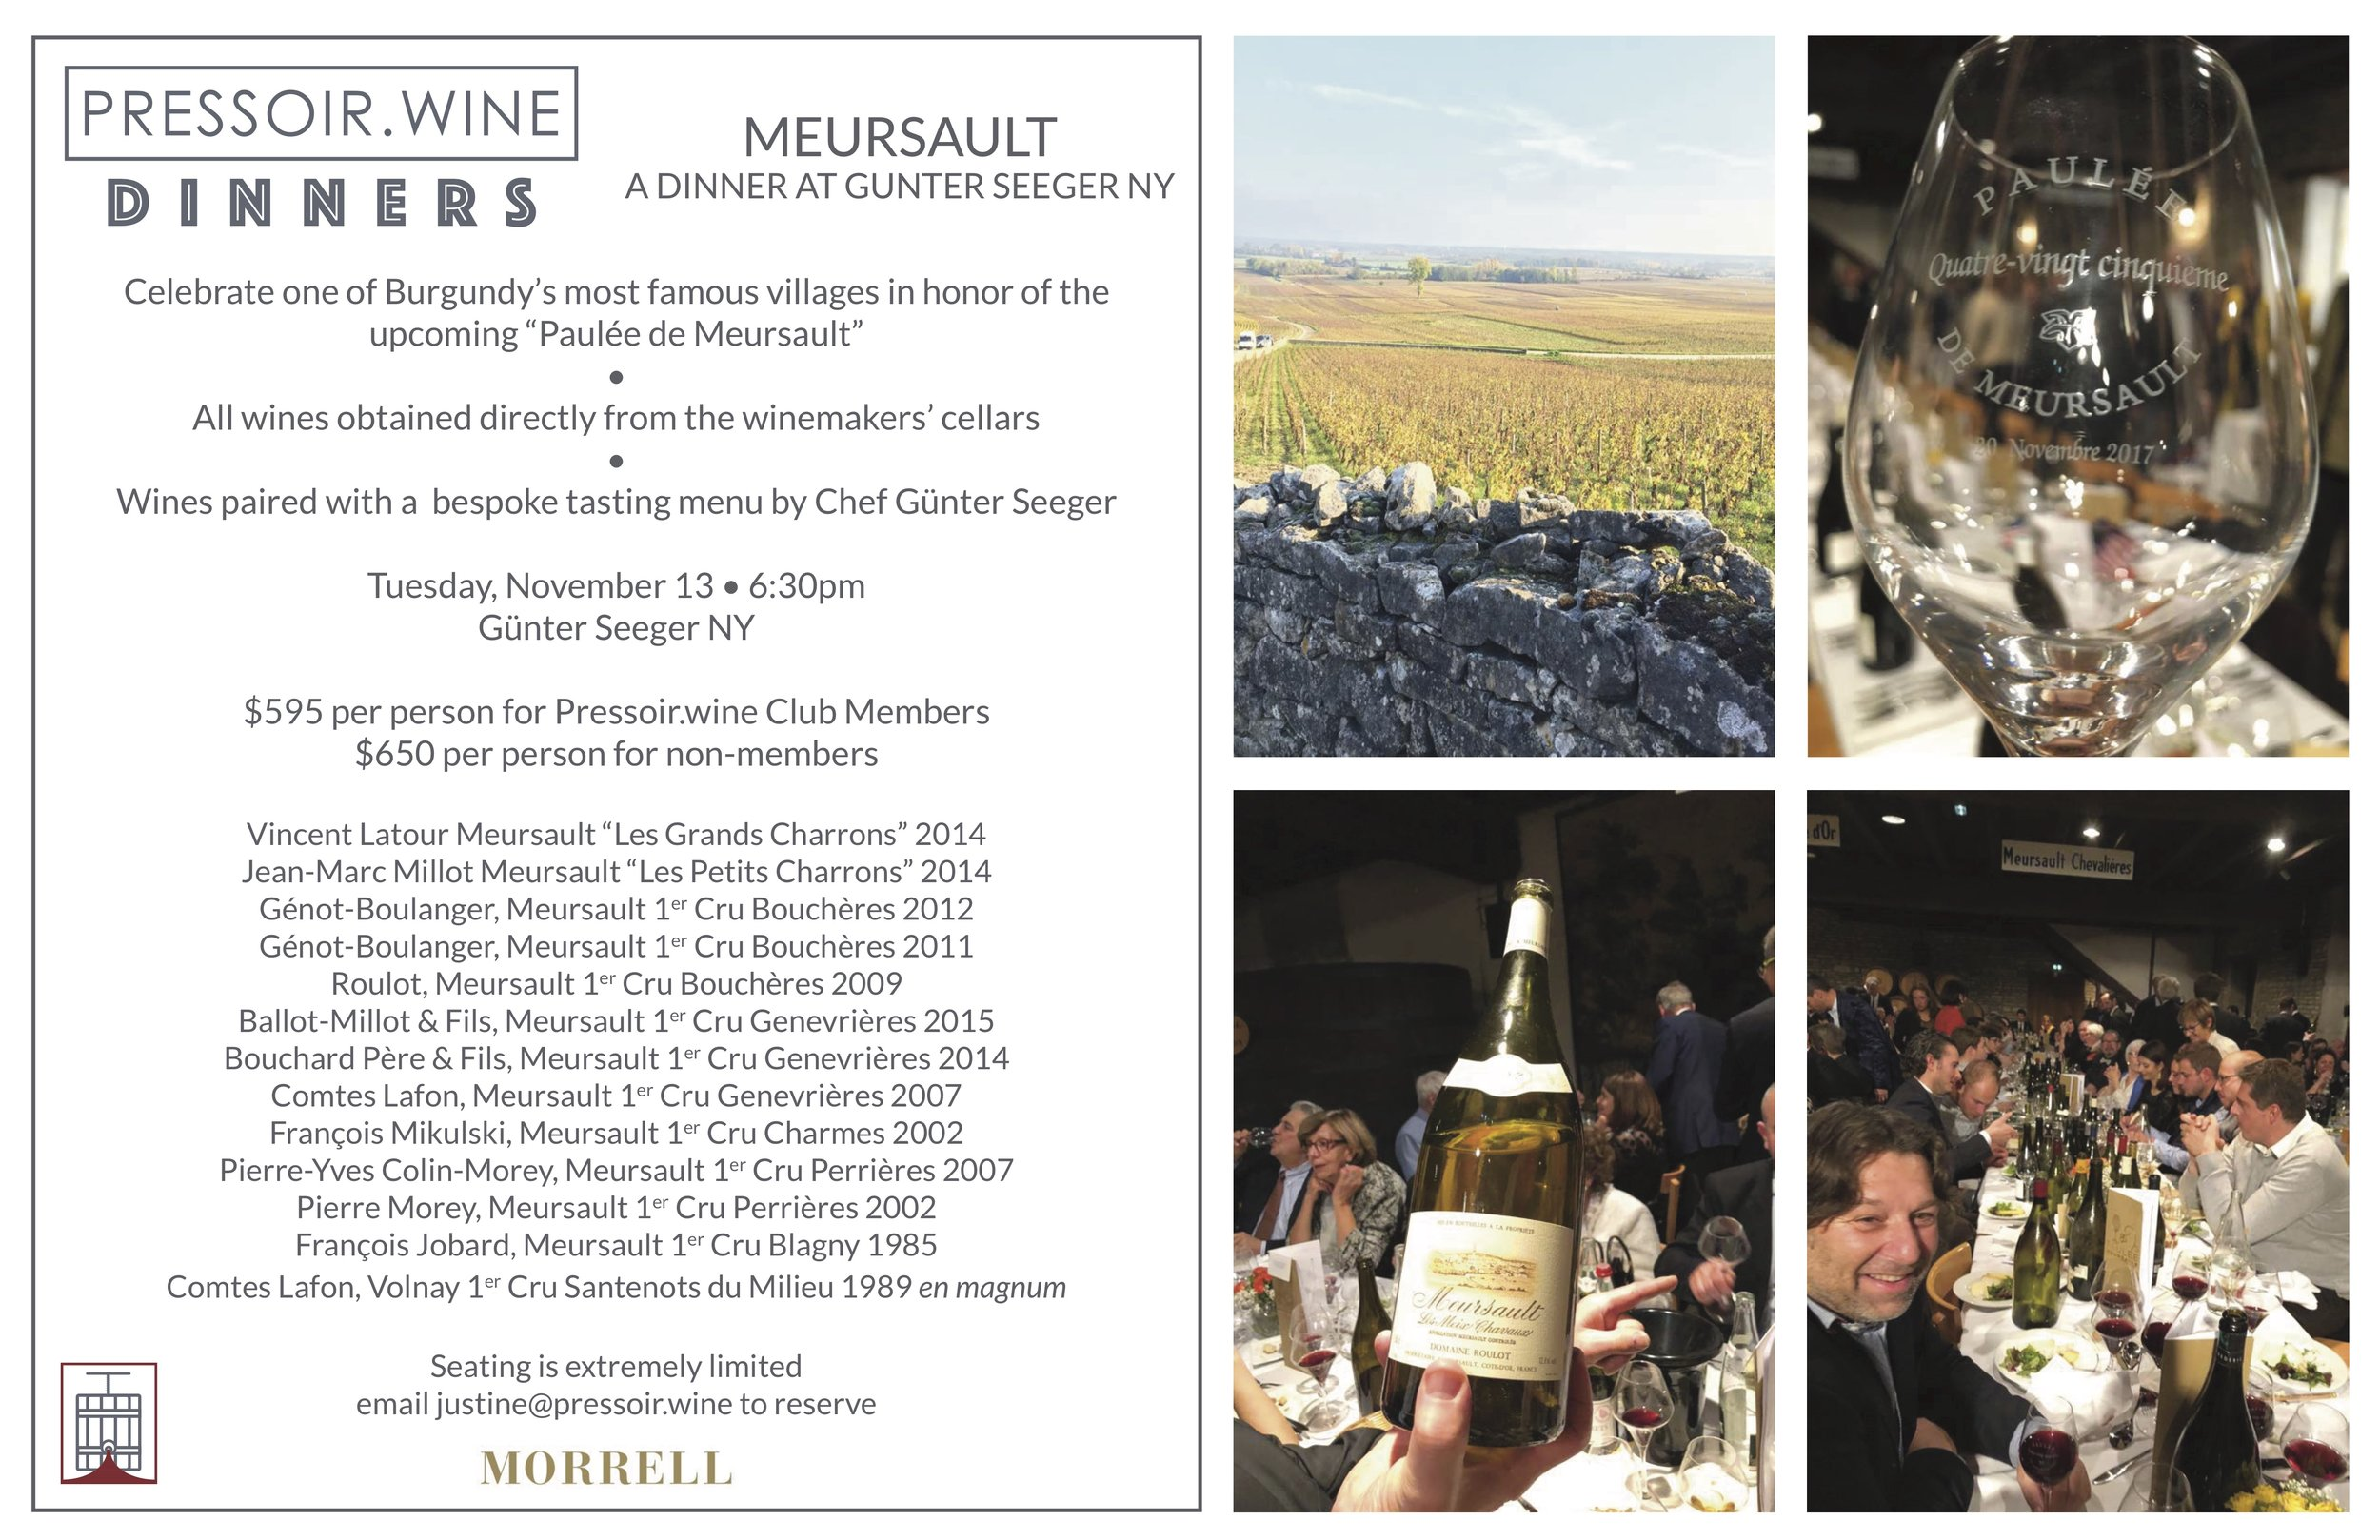 Pressoir.wine Meursault Dinner.jpg